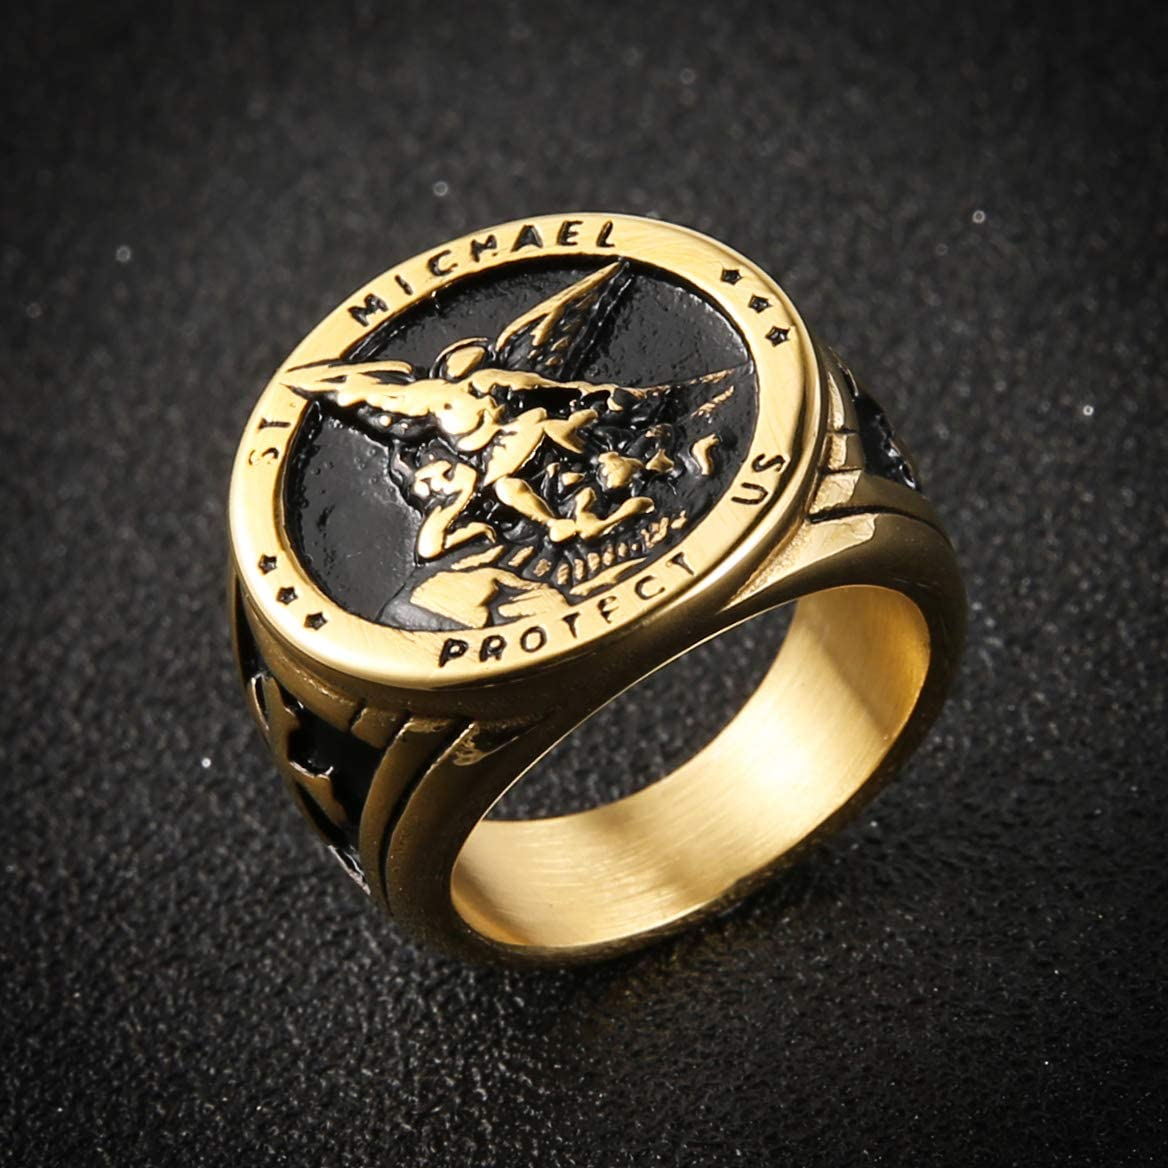 HZMAN St Michael San Miguel The Great Protector Archangel Defeating Satan Figurine Stainless Steel Amulet Ring